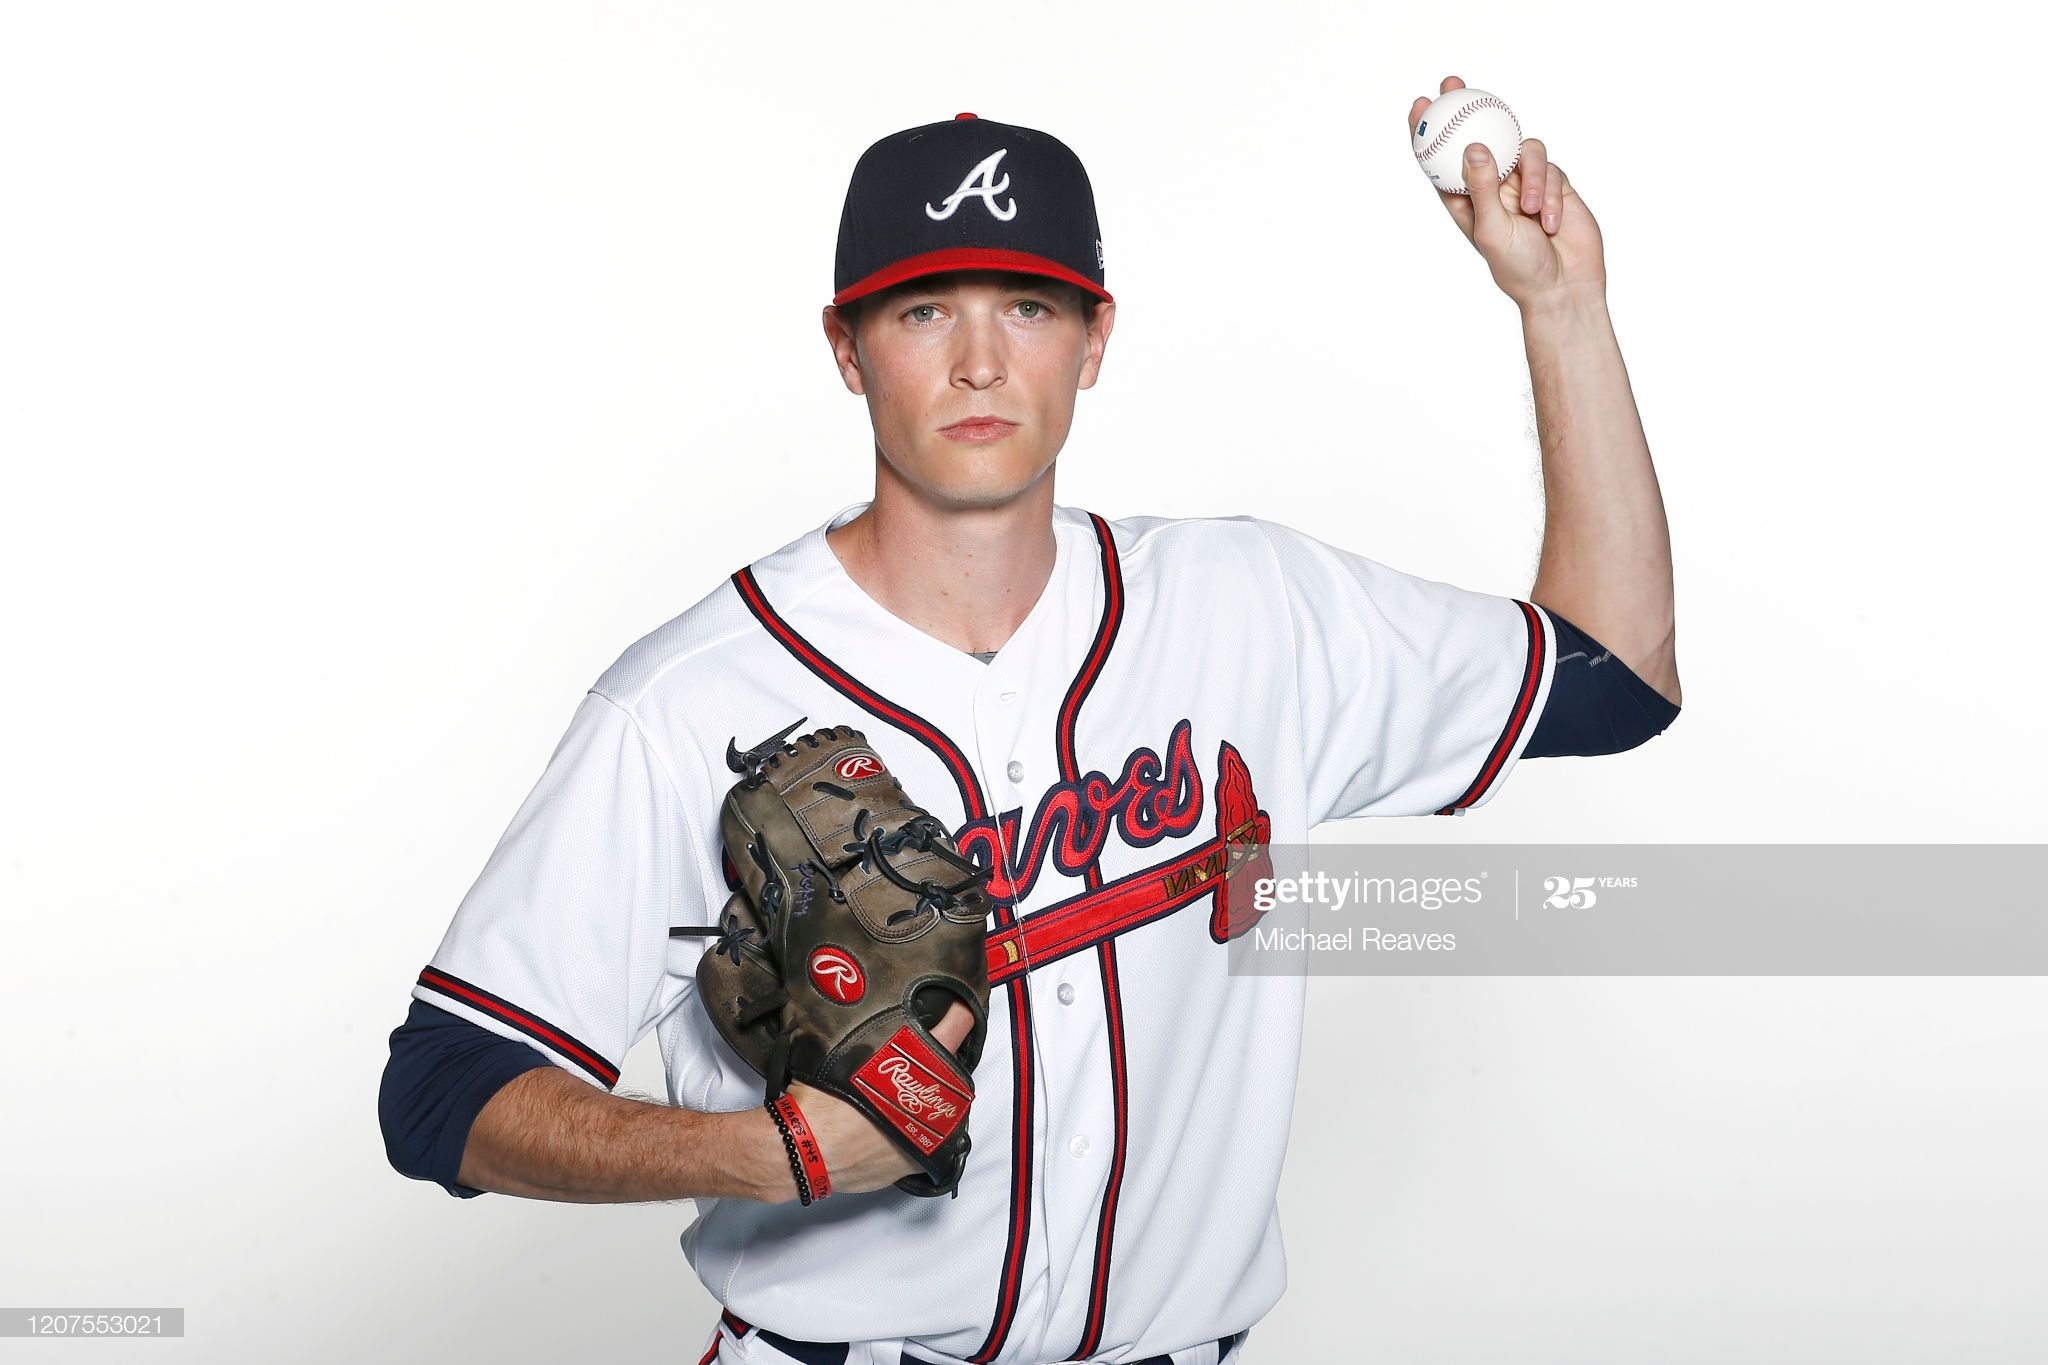 Max Fried Of The Atlanta Braves Poses For A Photo During Photo Day At In 2020 Atlanta Braves Braves Atlanta Braves Baby